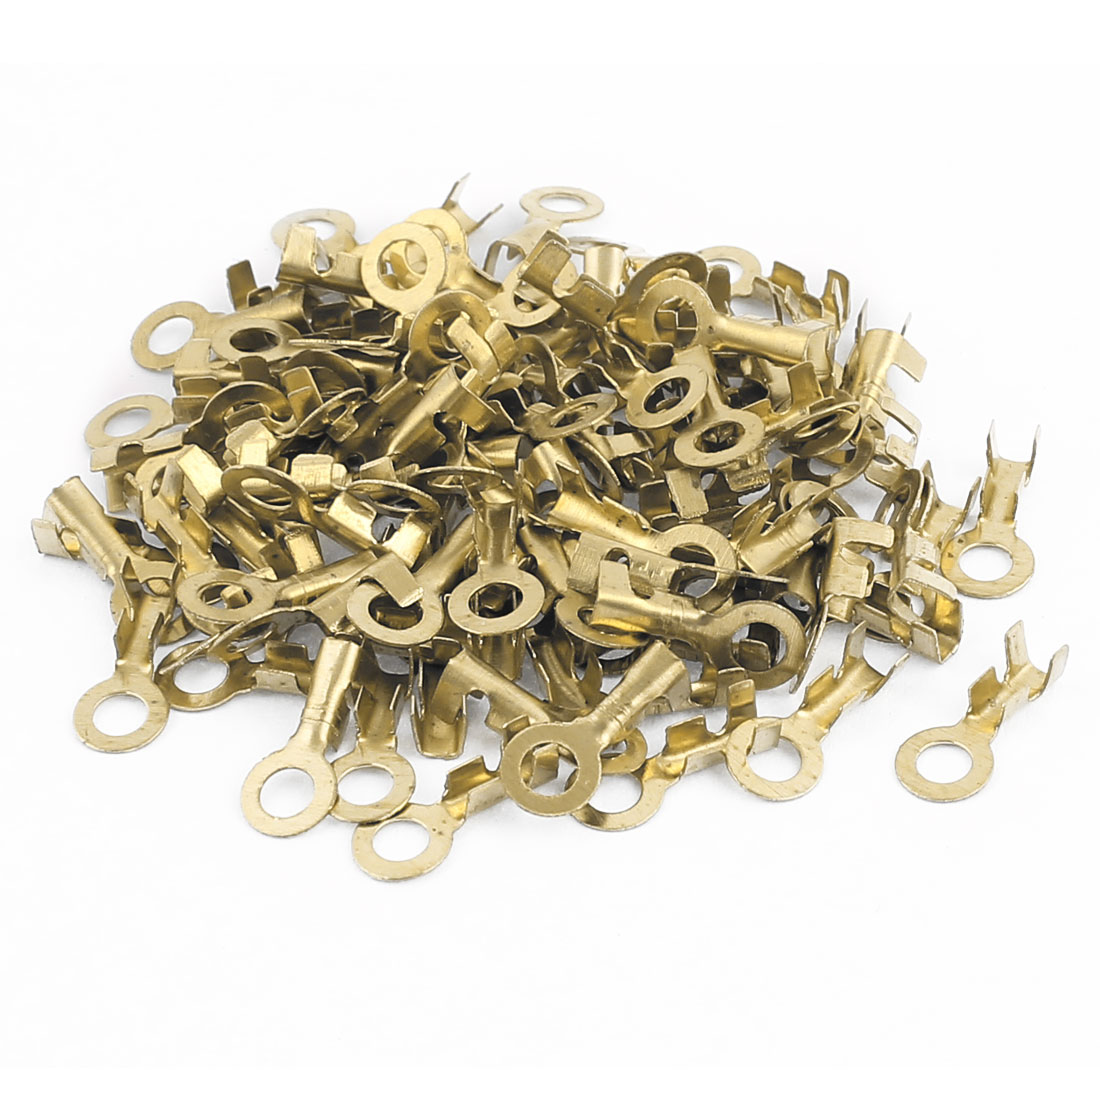 100 Pcs 2.7mm Dia Open Cable Connector Ring Tongue Passing Through Terminals